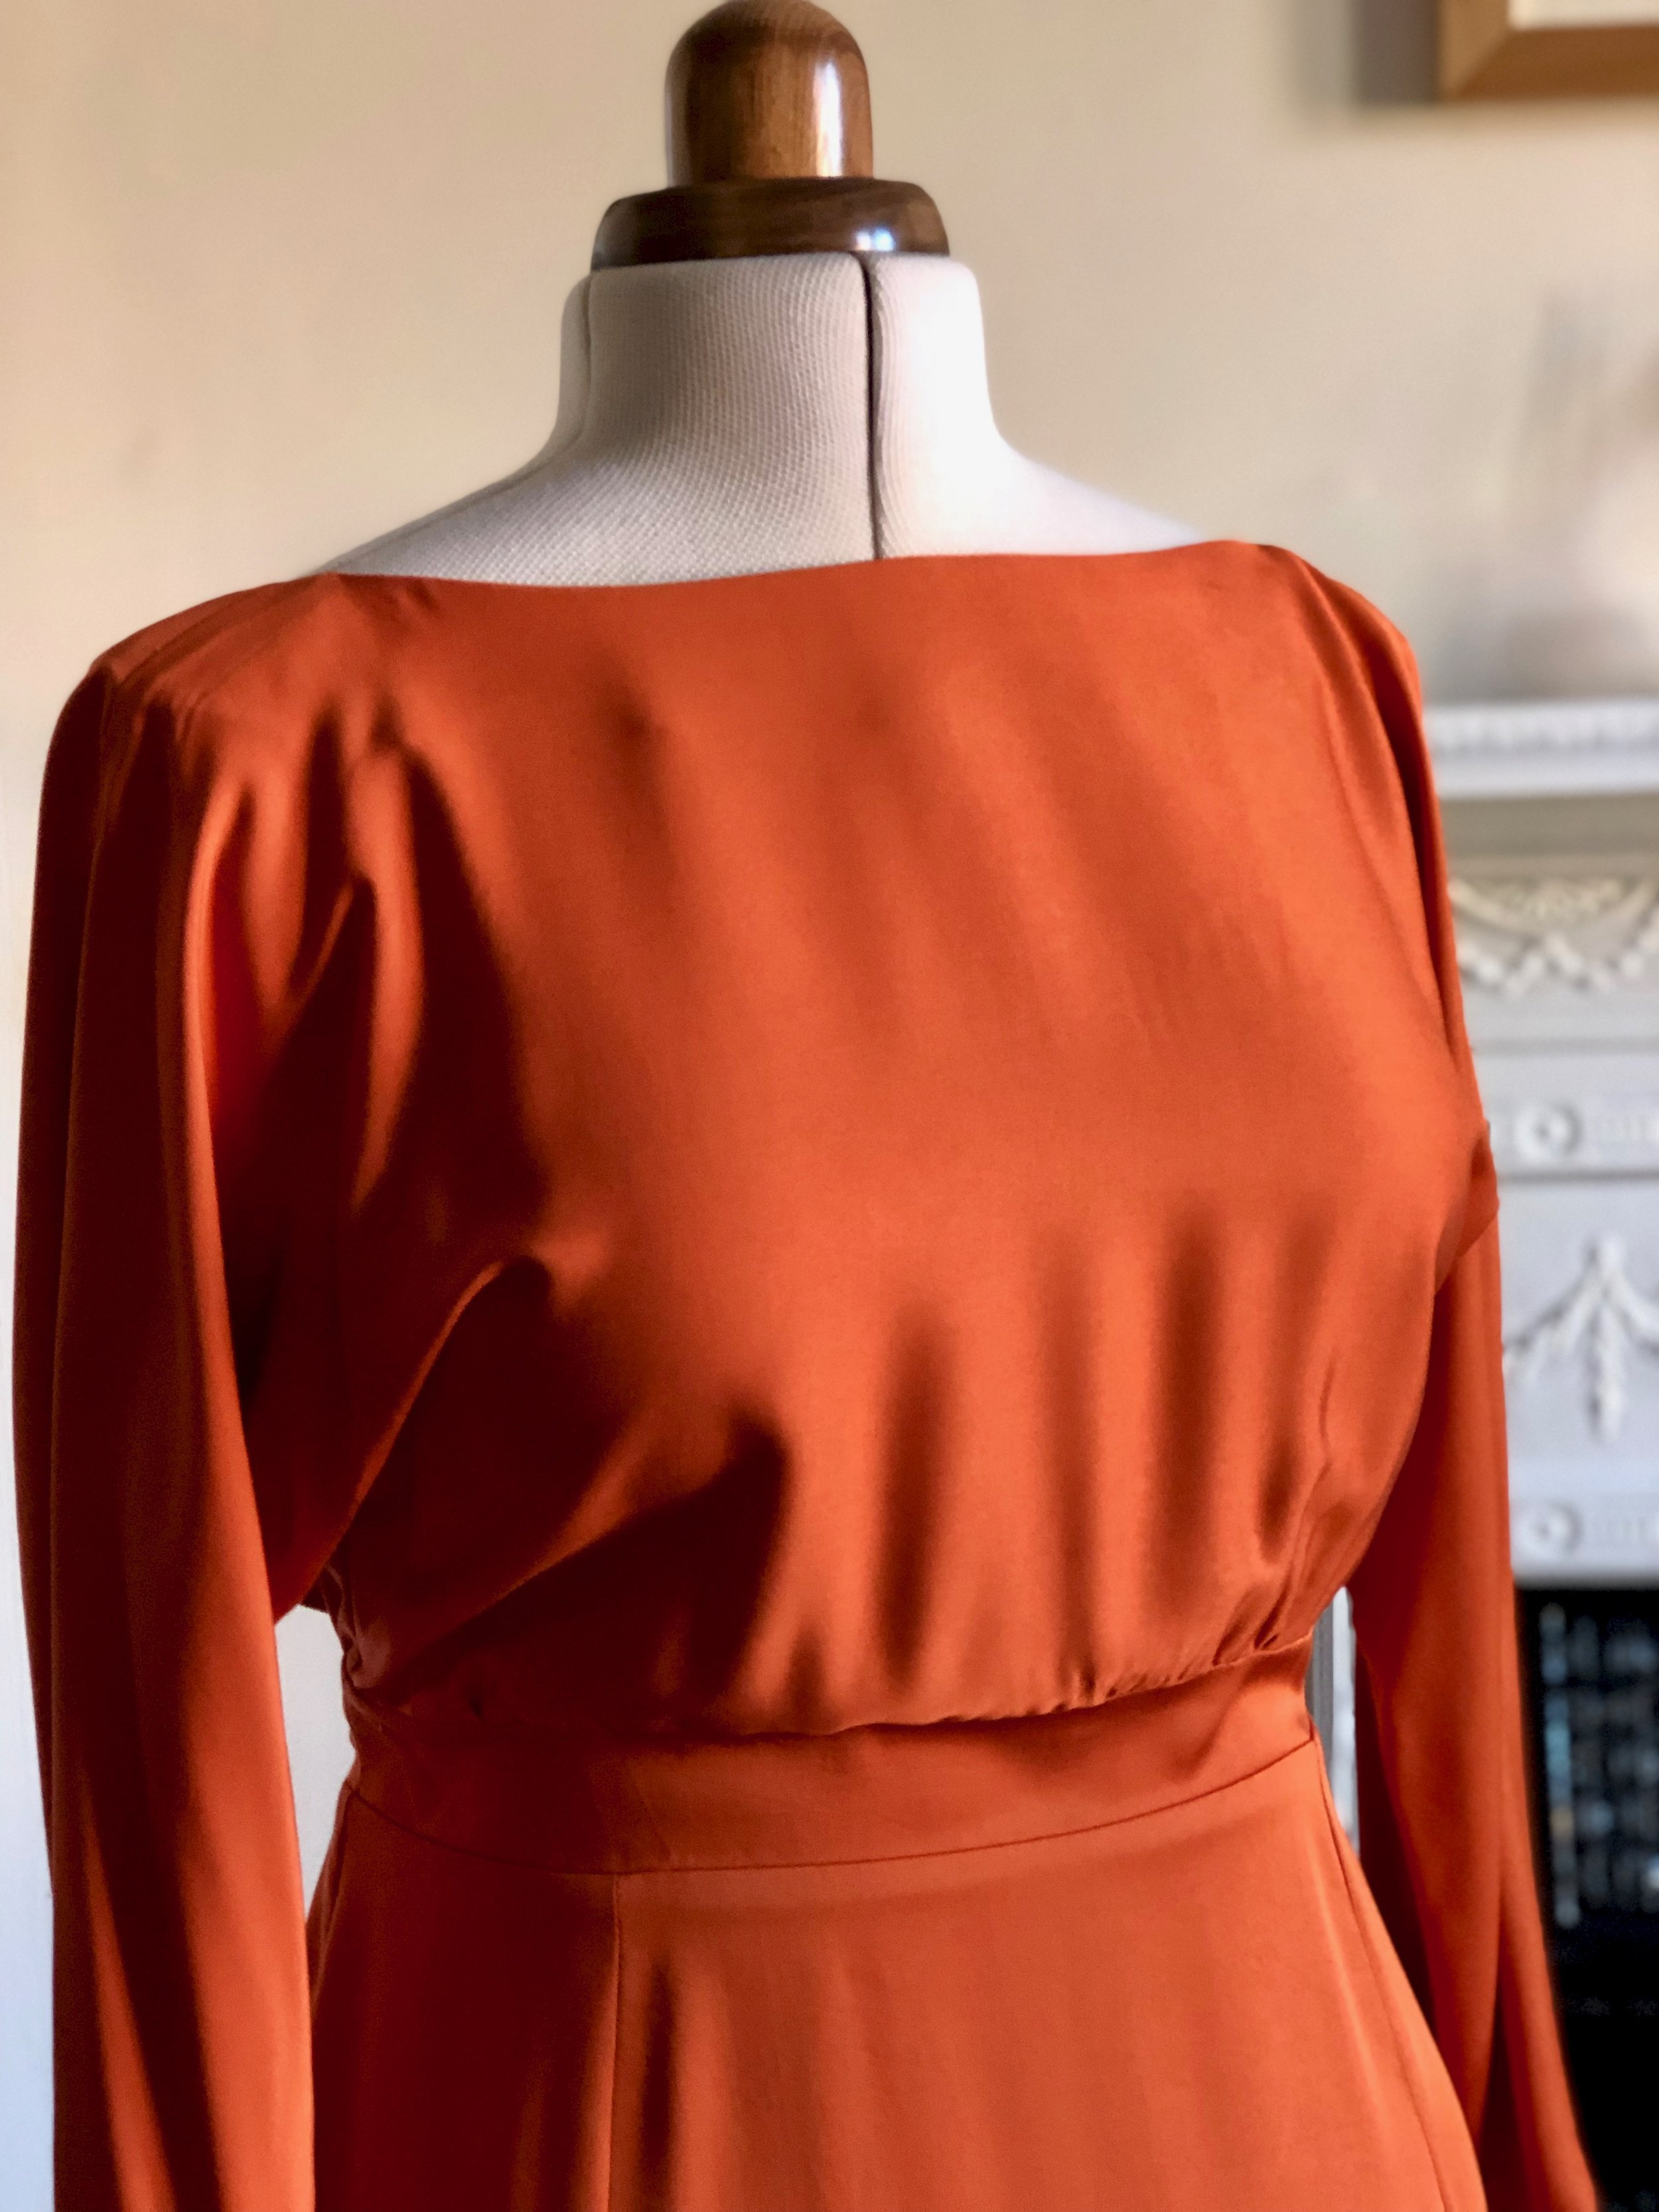 ORANGEBACKLESSDRESS_IMG_3189.jpg